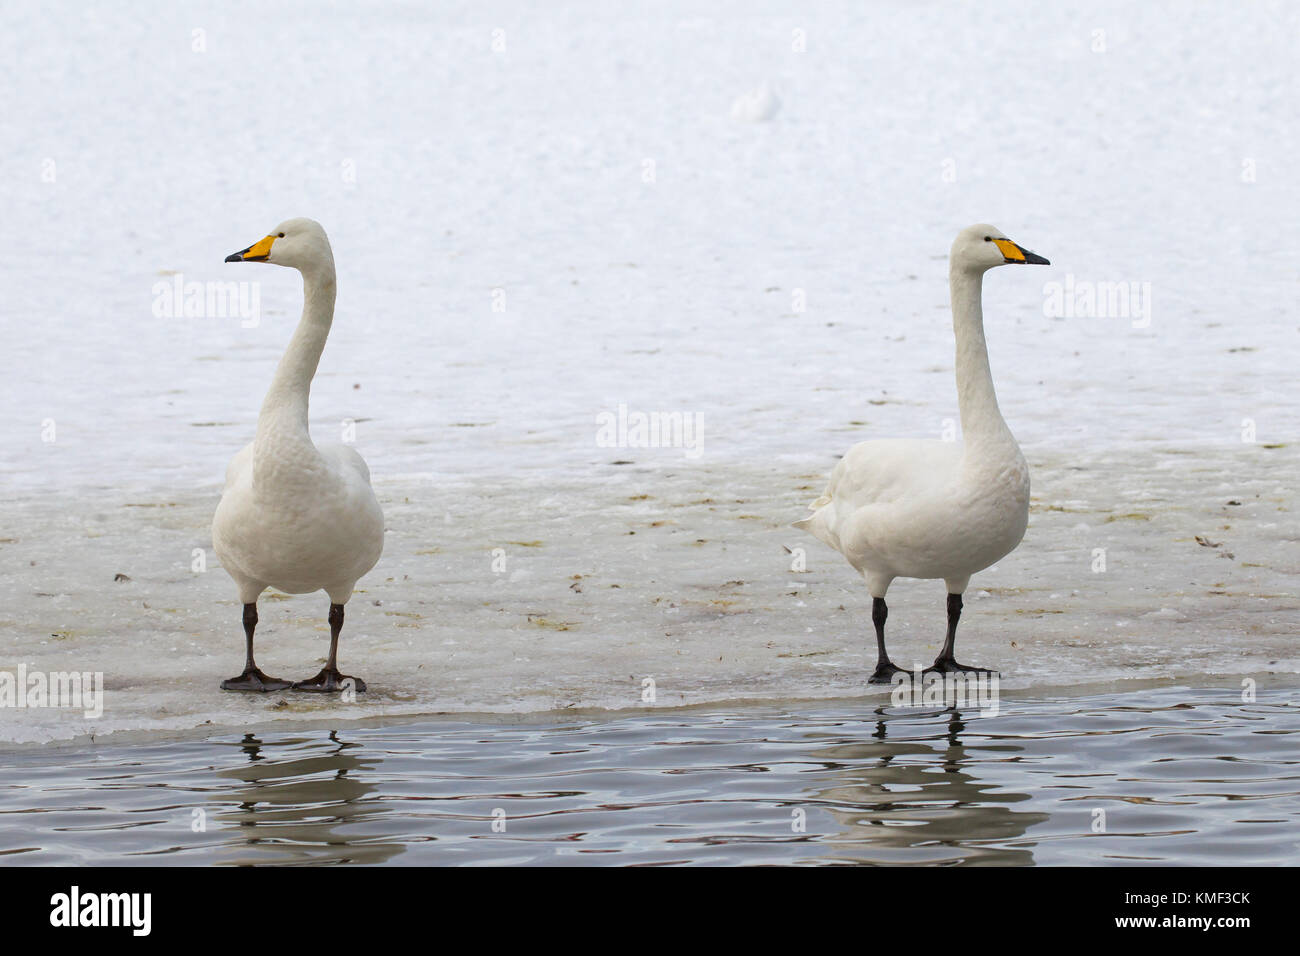 Two whooper swans (Cygnus cygnus) standing on ice of frozen pond in winter Stock Photo